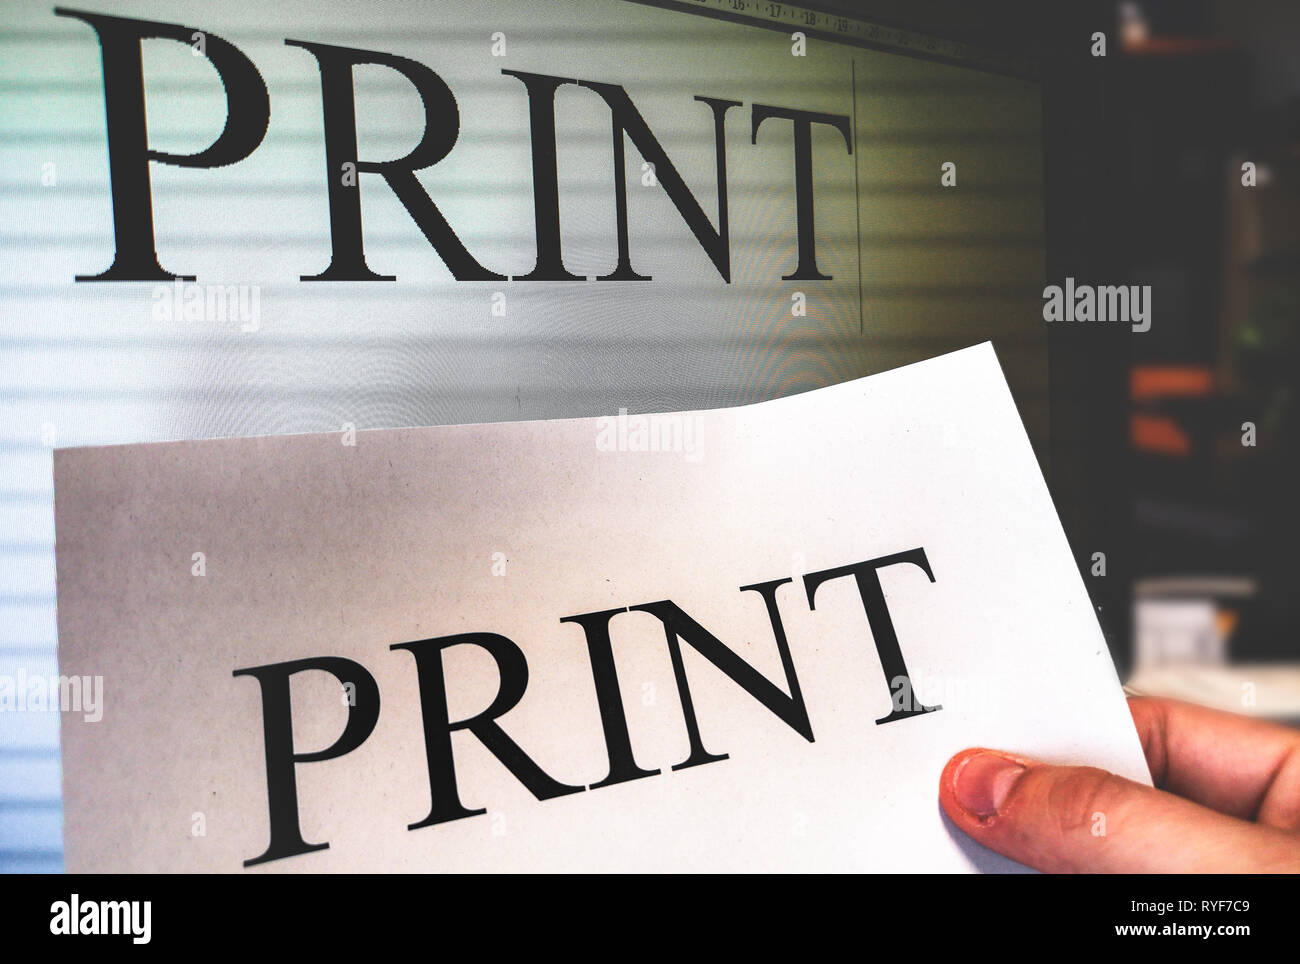 printer hand hold a print sheet with word processor software screen on background in office - Stock Image